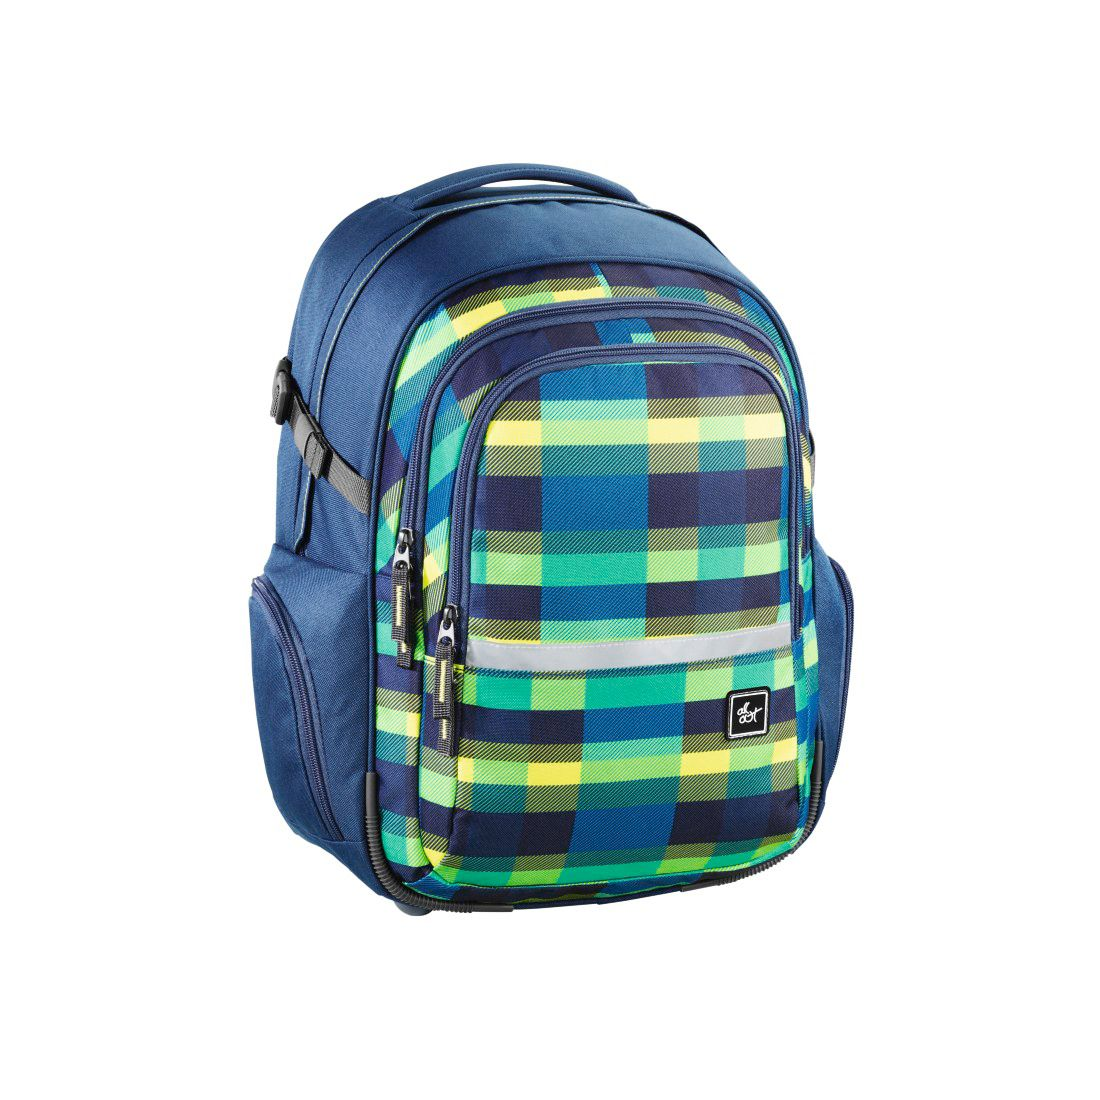 ALL OUT All Out Rucksack Filby, Summer Check Green